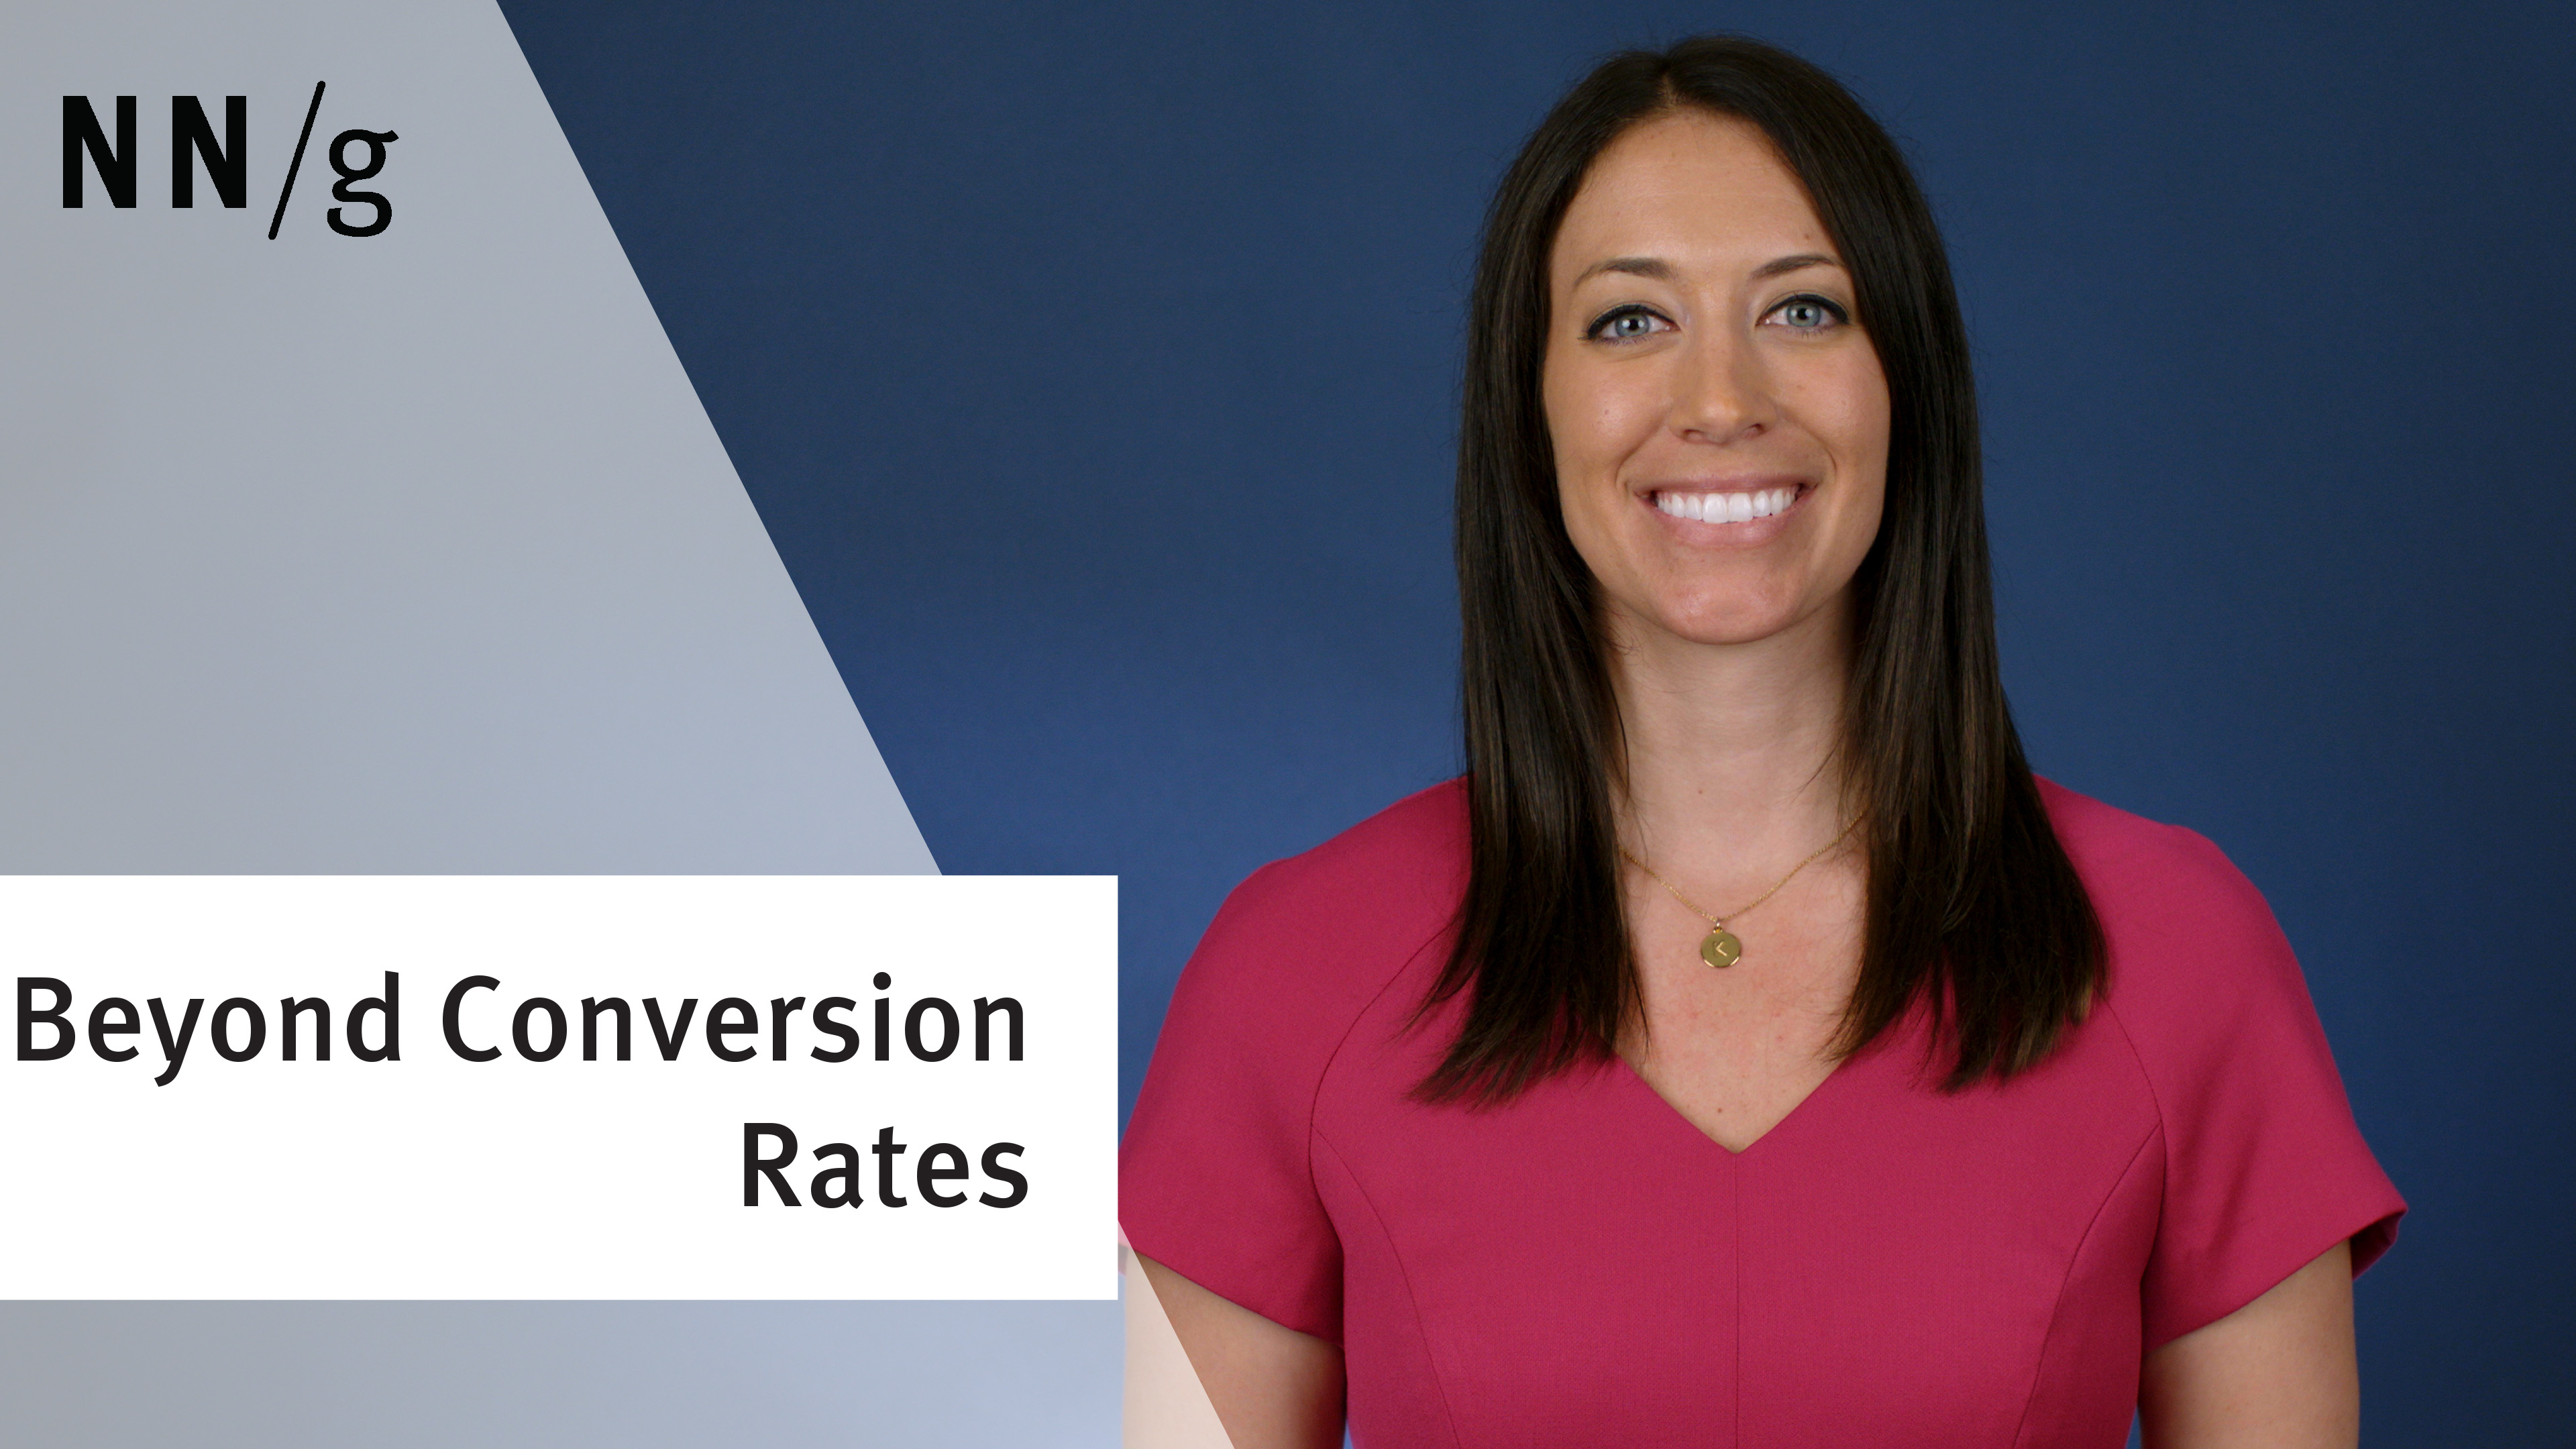 Pitfalls of Conversion-Rate-Only Concern